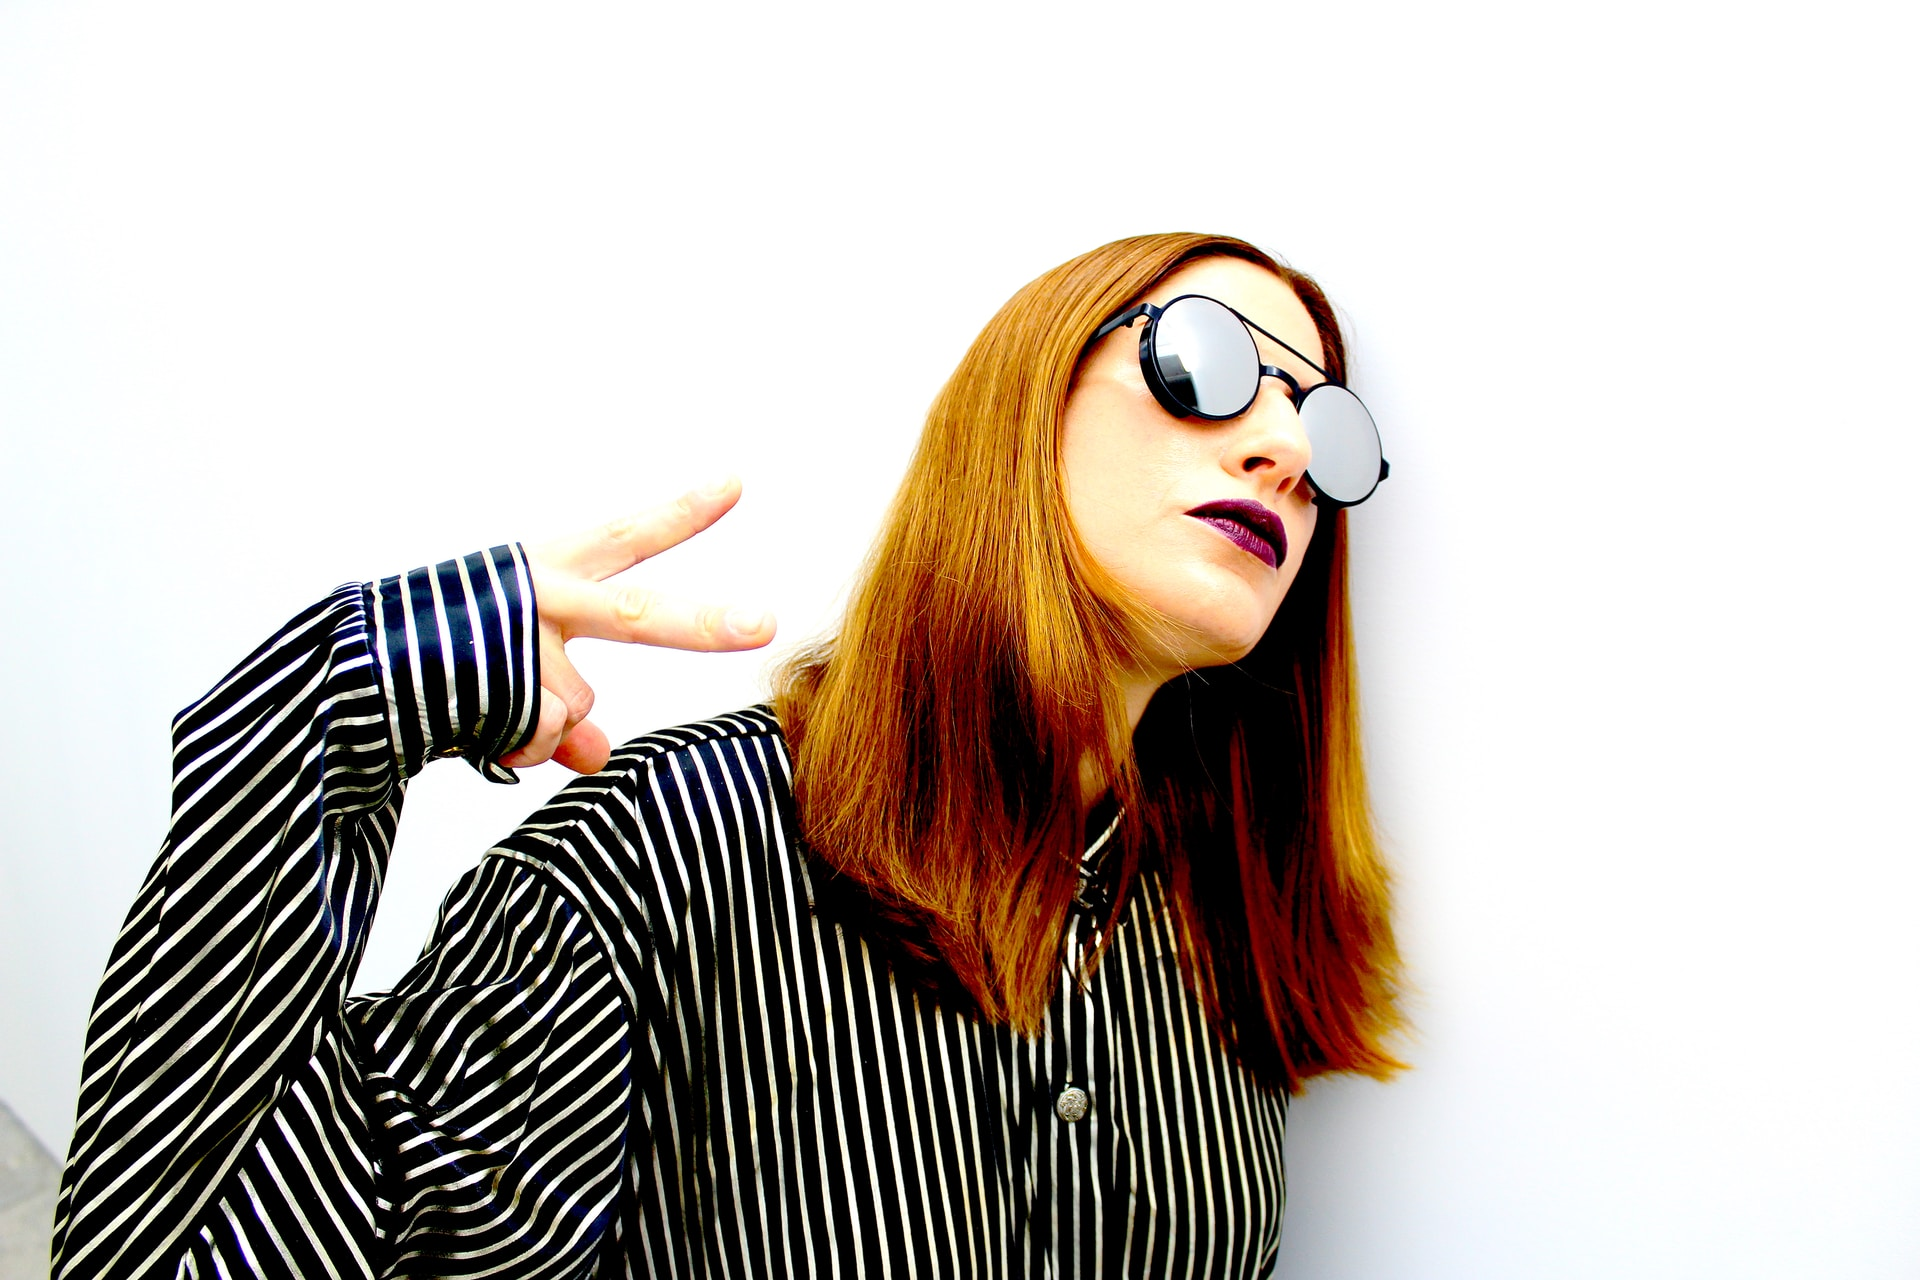 woman in black and white striped long sleeve shirt wearing black sunglasses